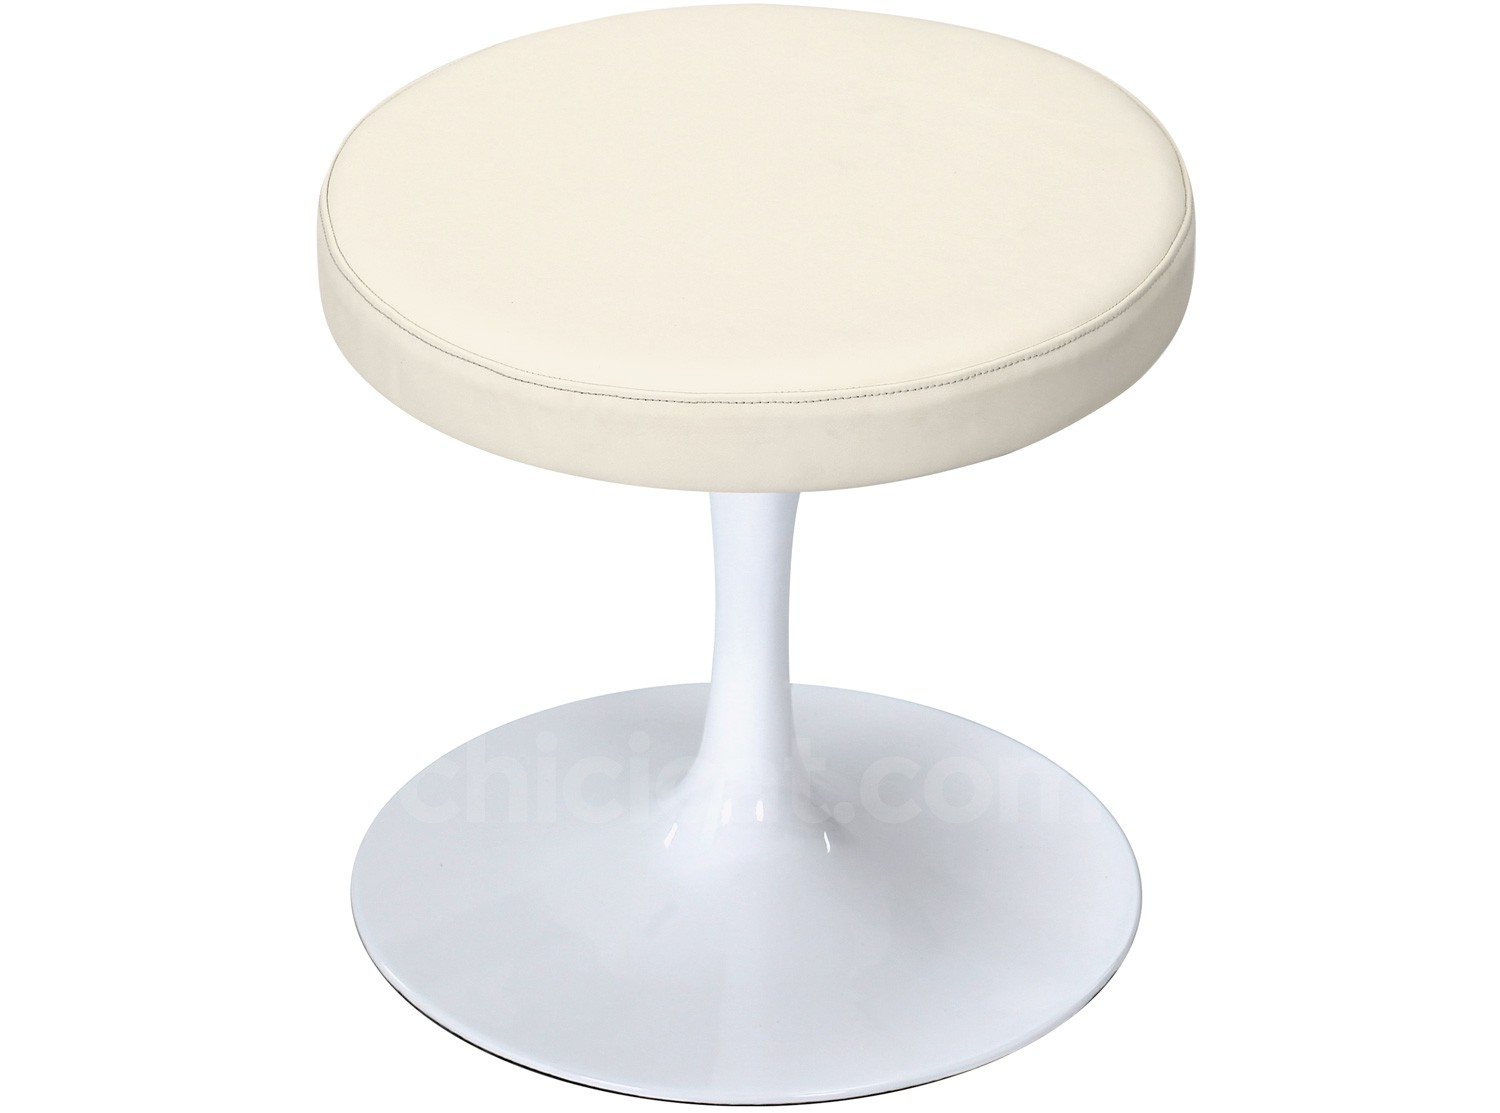 Tulip stool by eero saarinen aluminum platinum replica for About a stool replica